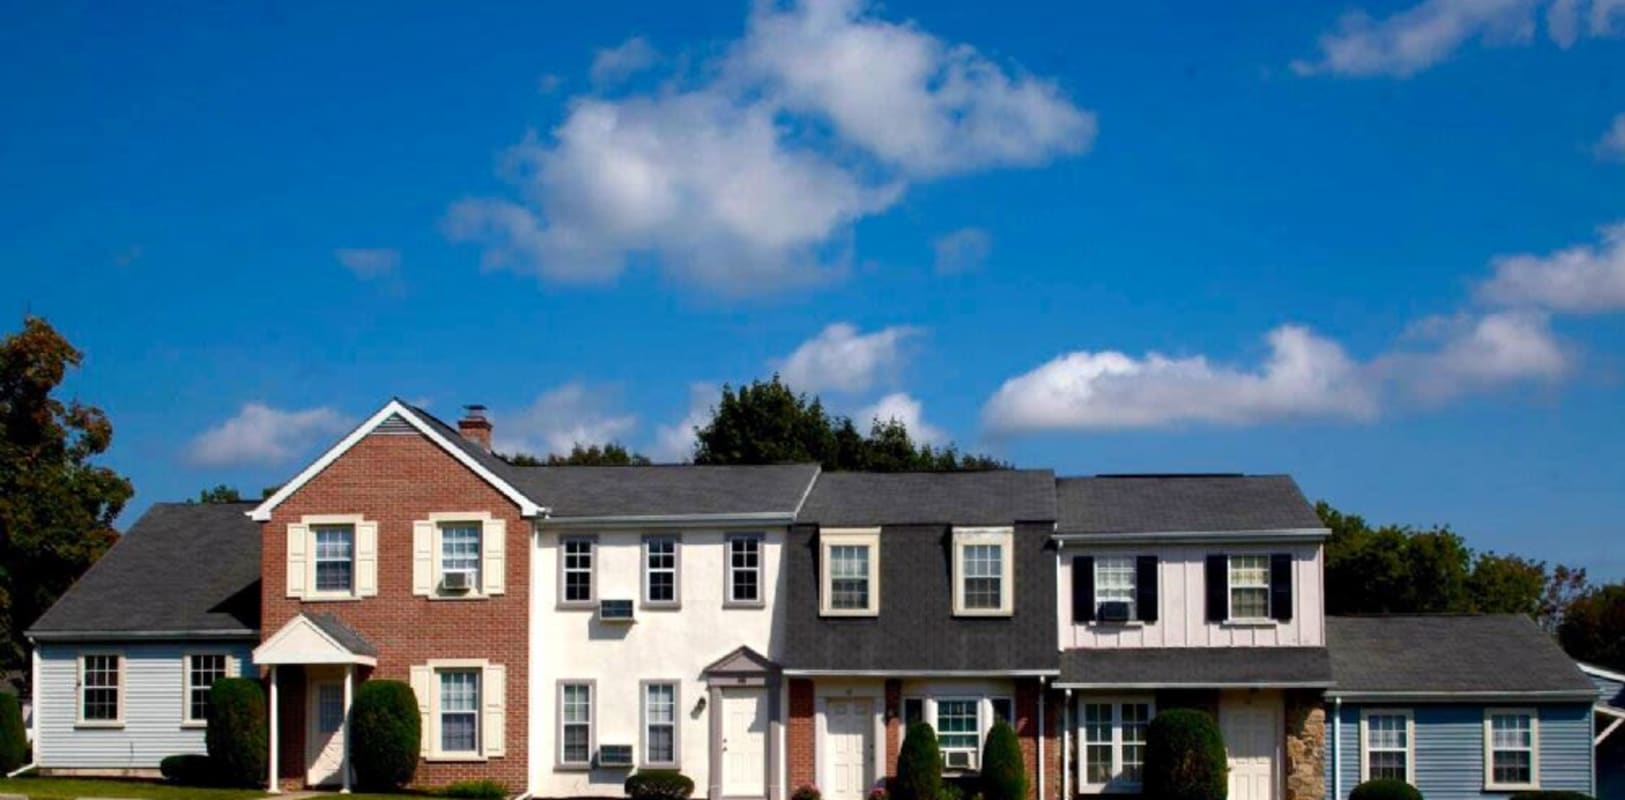 Townhomes view from the street at Oley Meadows in Oley, Pennsylvania